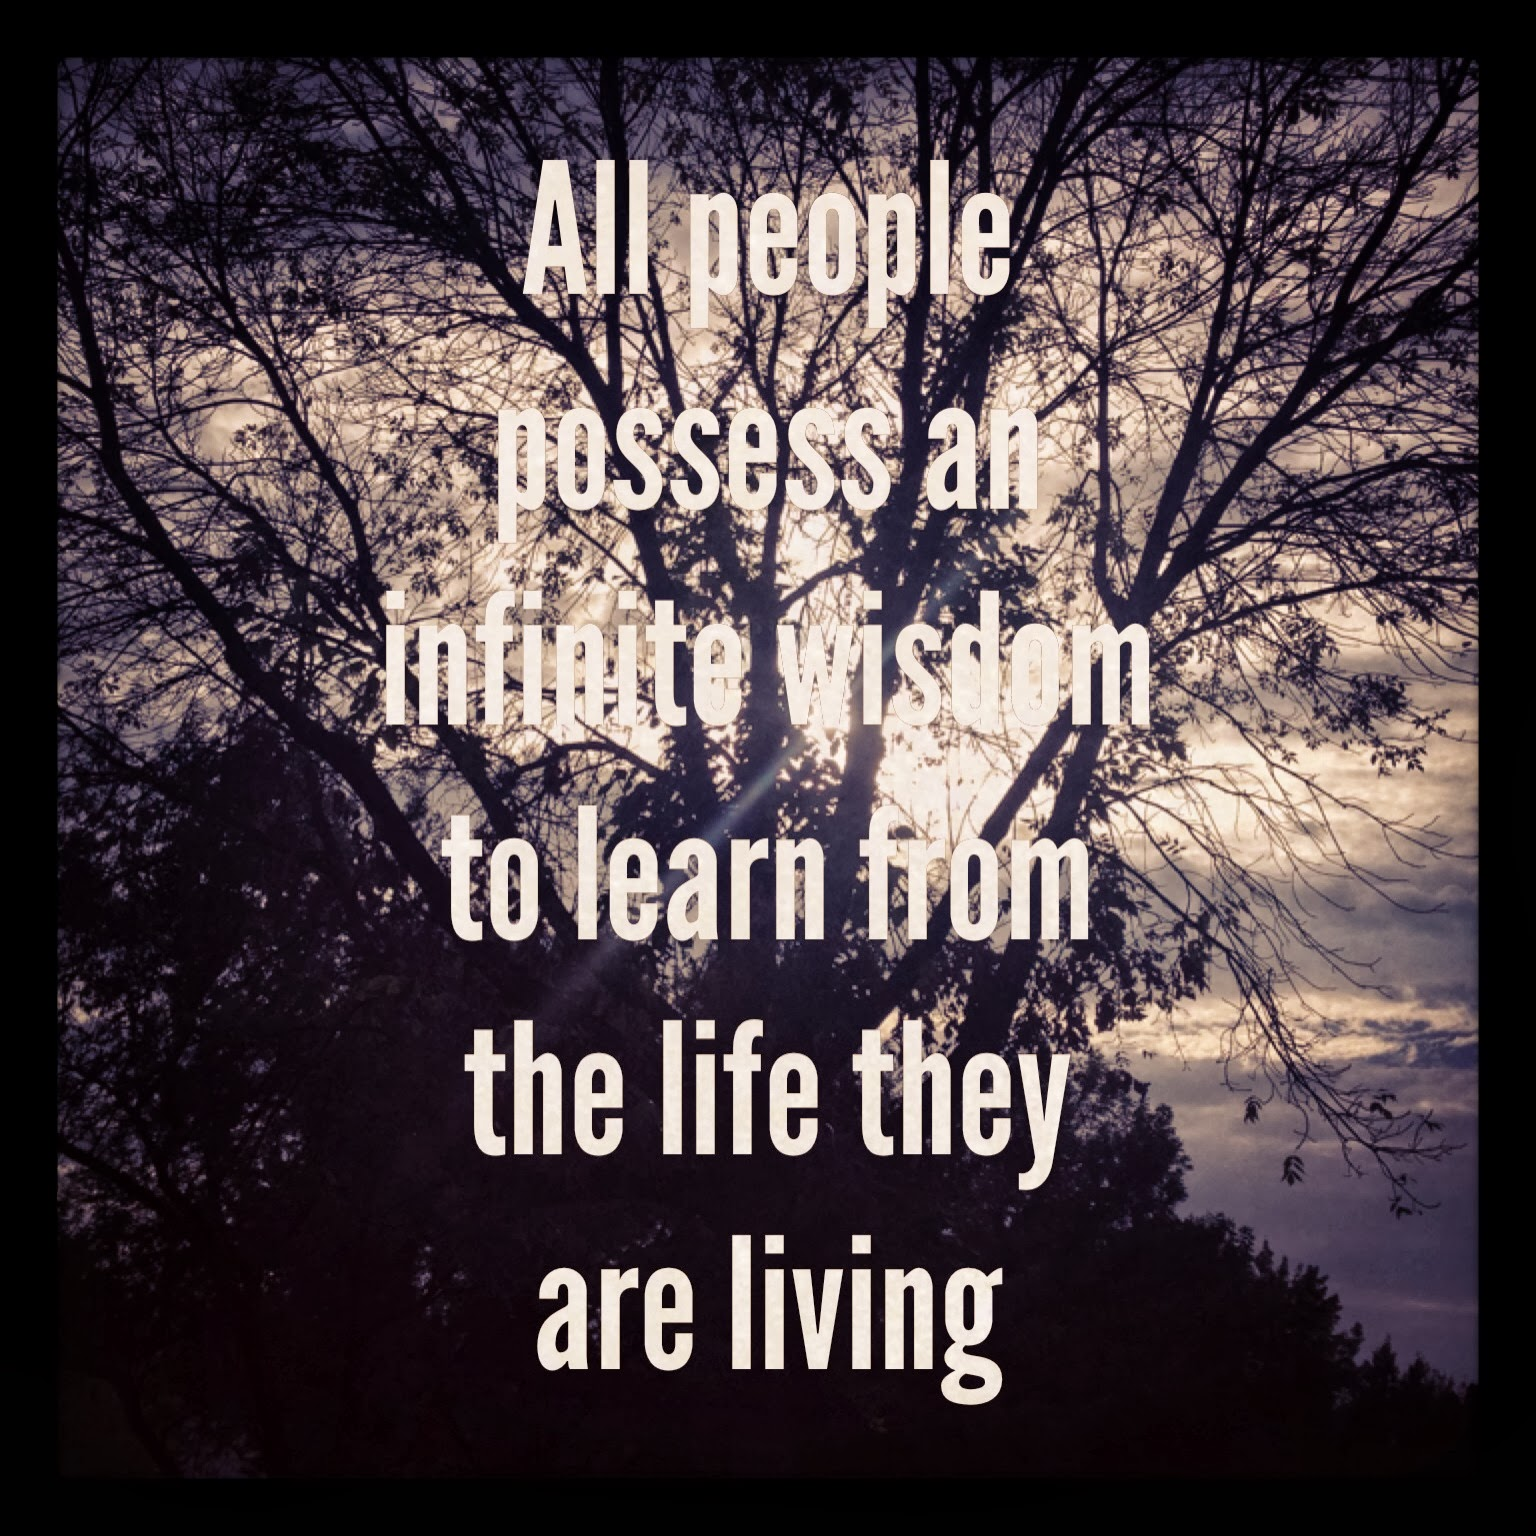 susan marie schulhof all people possess an infinite wisdom to all people possess an infinite wisdom to learn from the life they are living